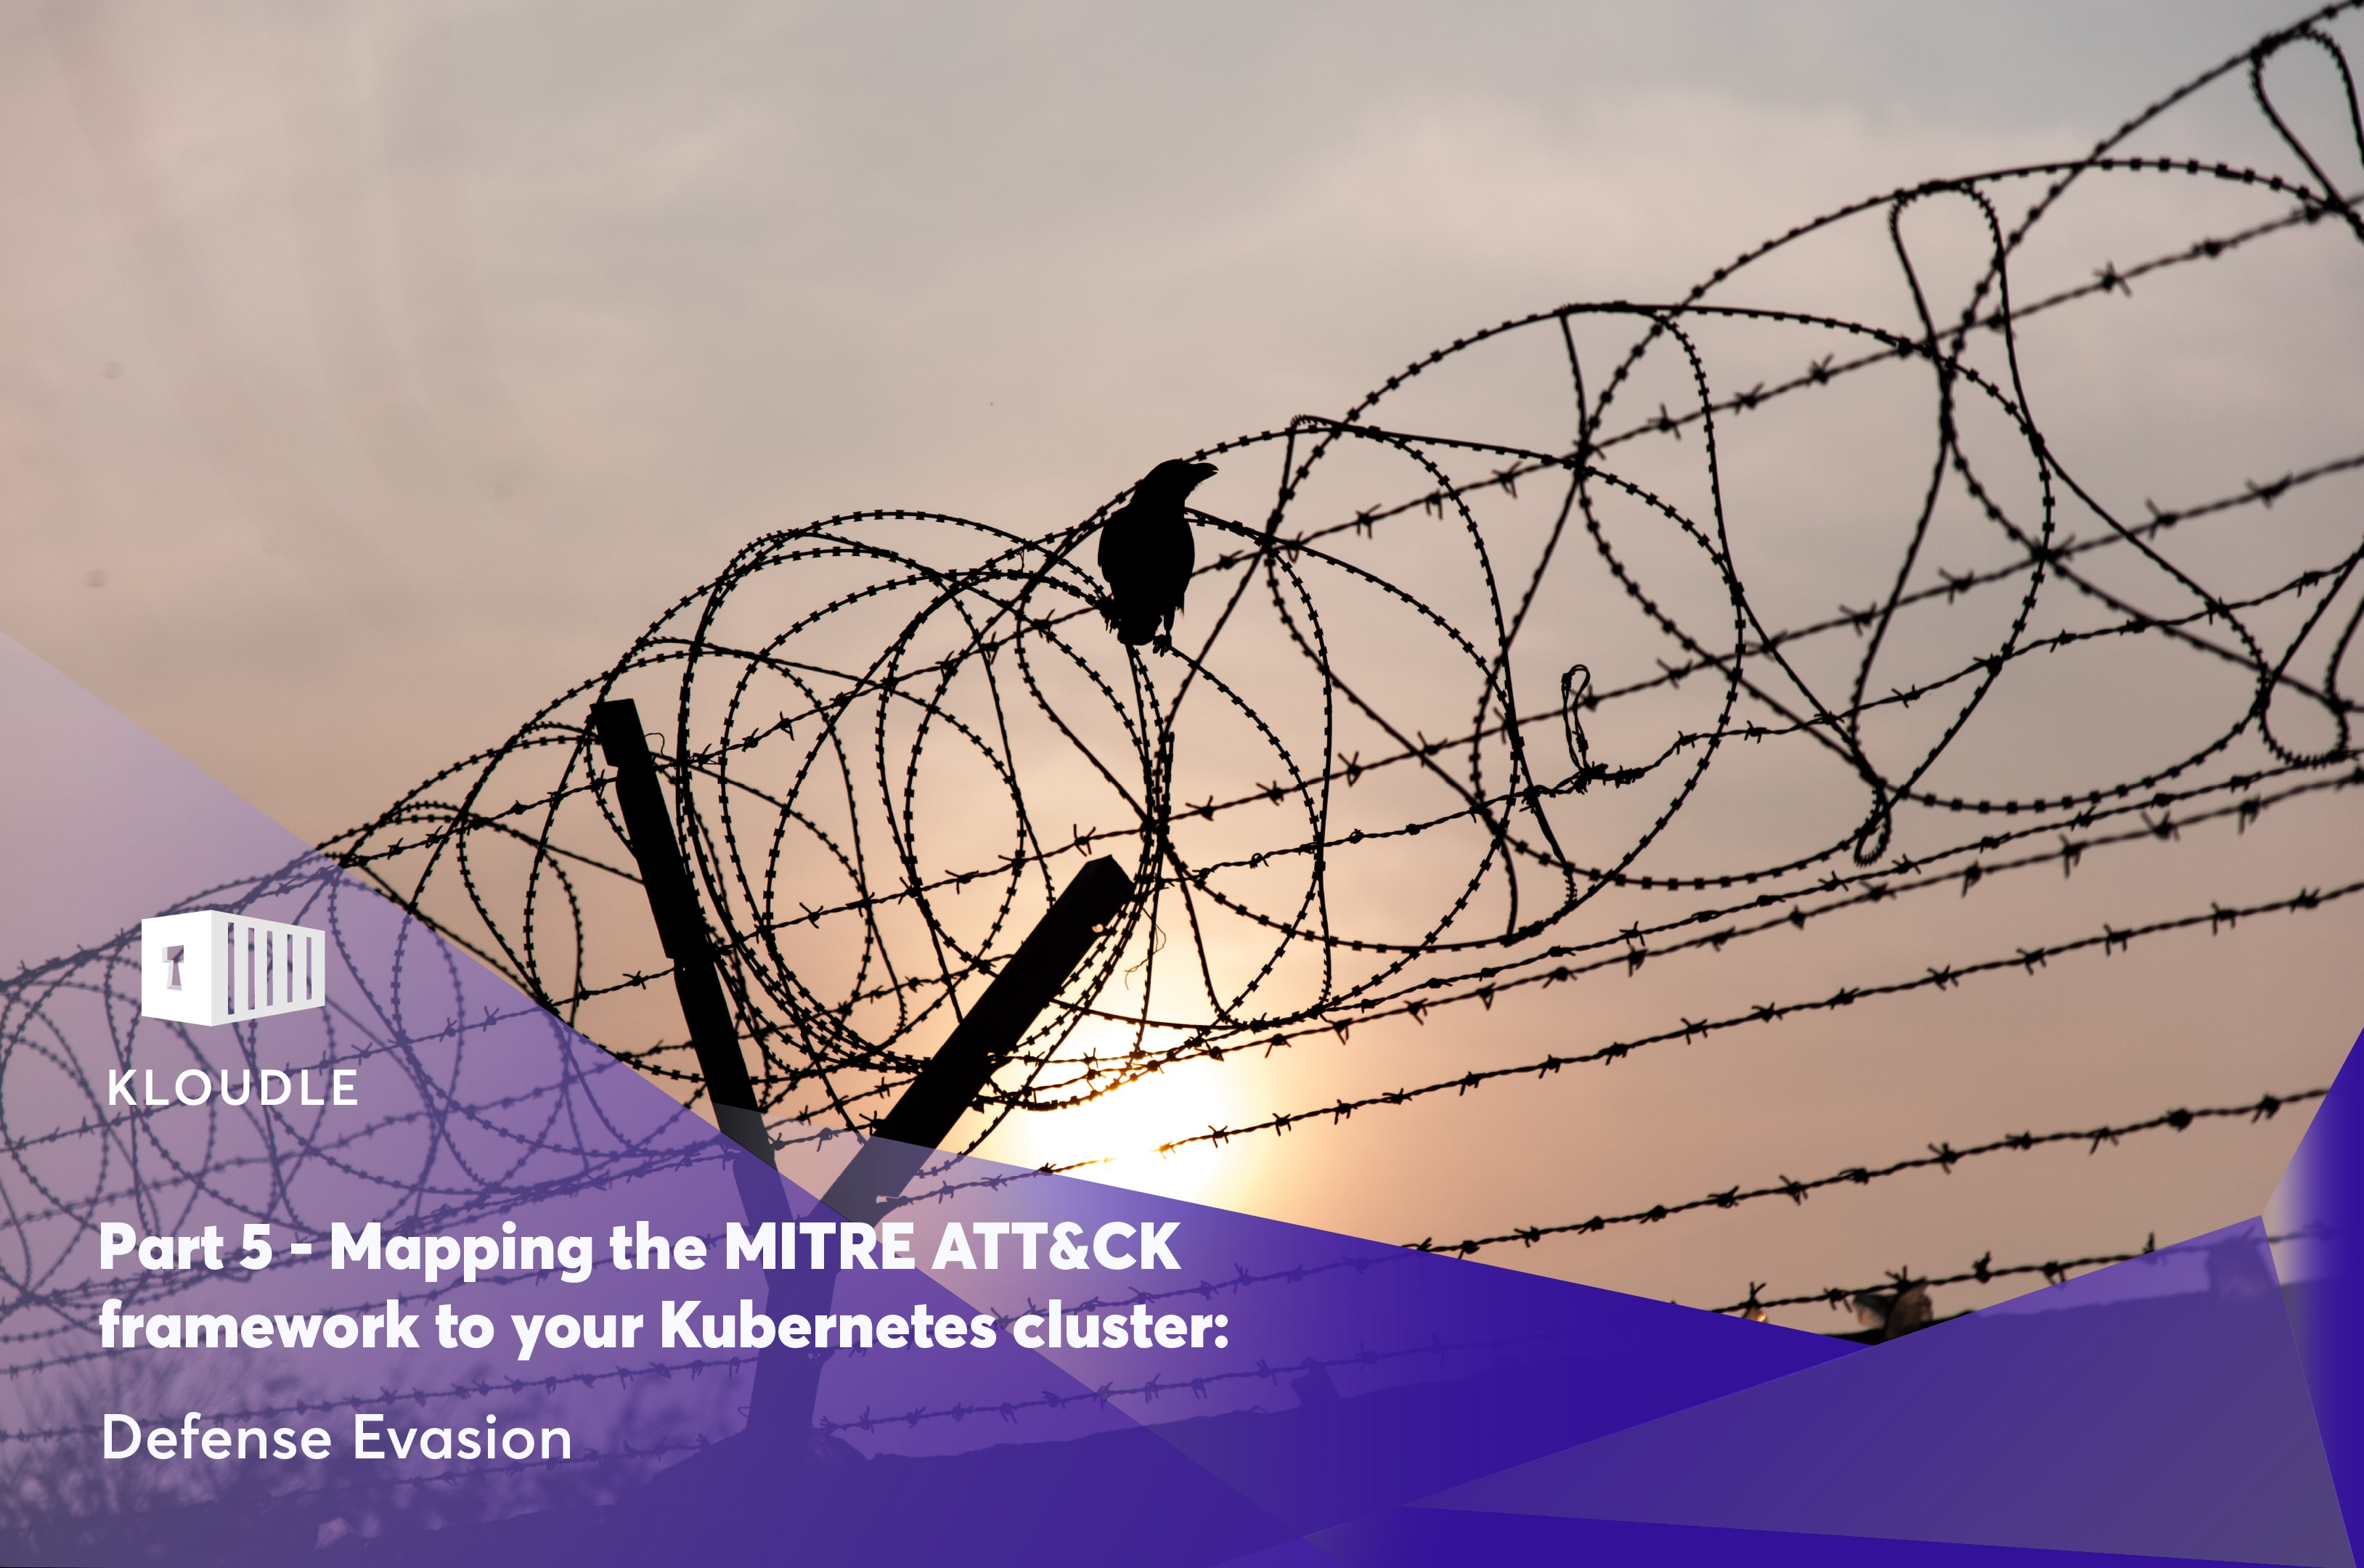 Part 5 - Mapping the MITRE ATT&CK framework to your Kubernetes cluster: Defense Evasion